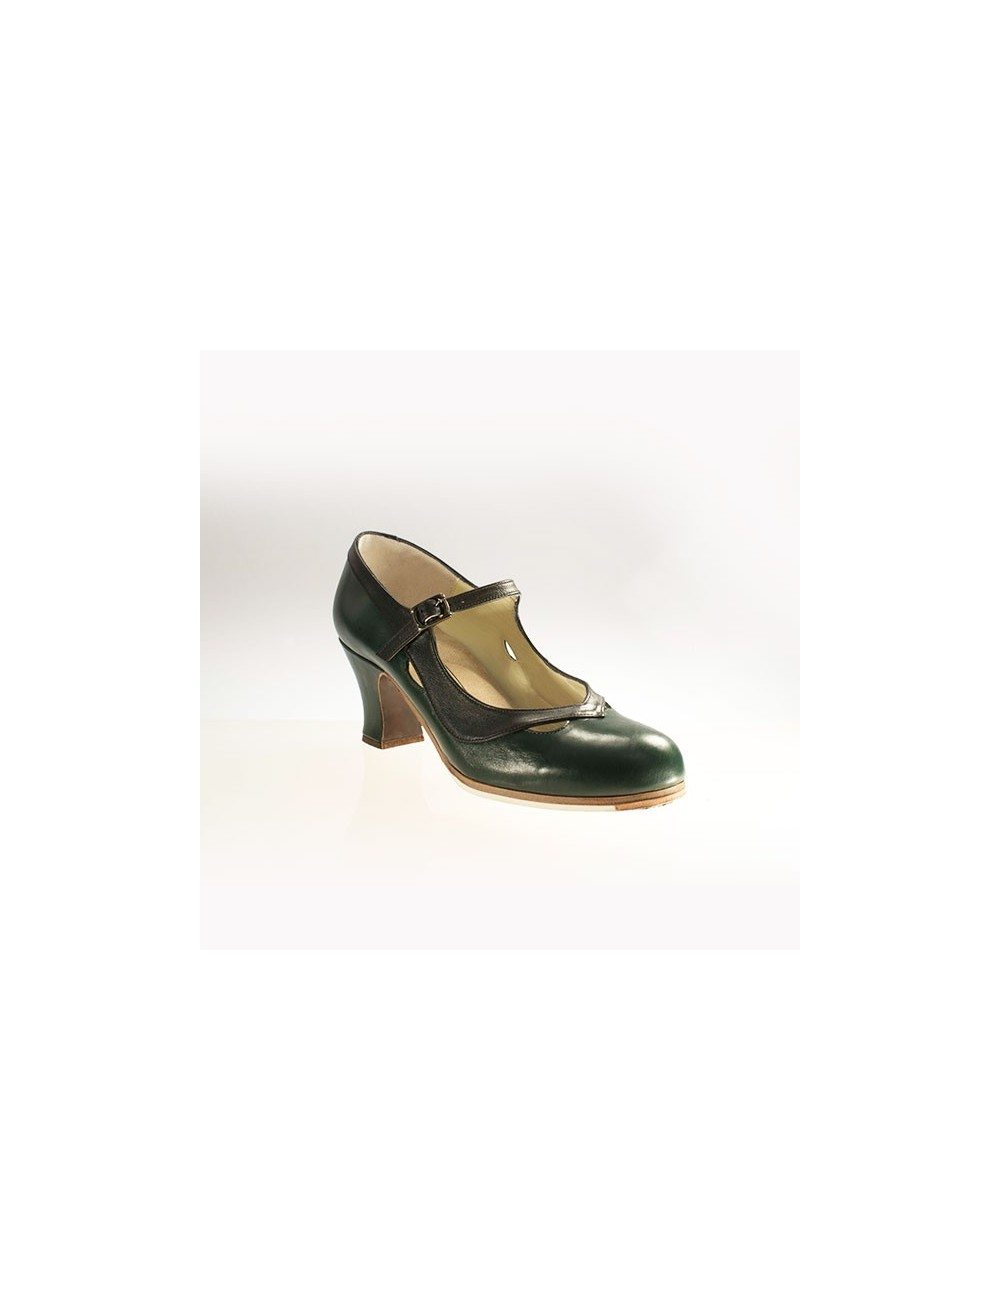 Chaussures flamenco Begona Salon Correa M30